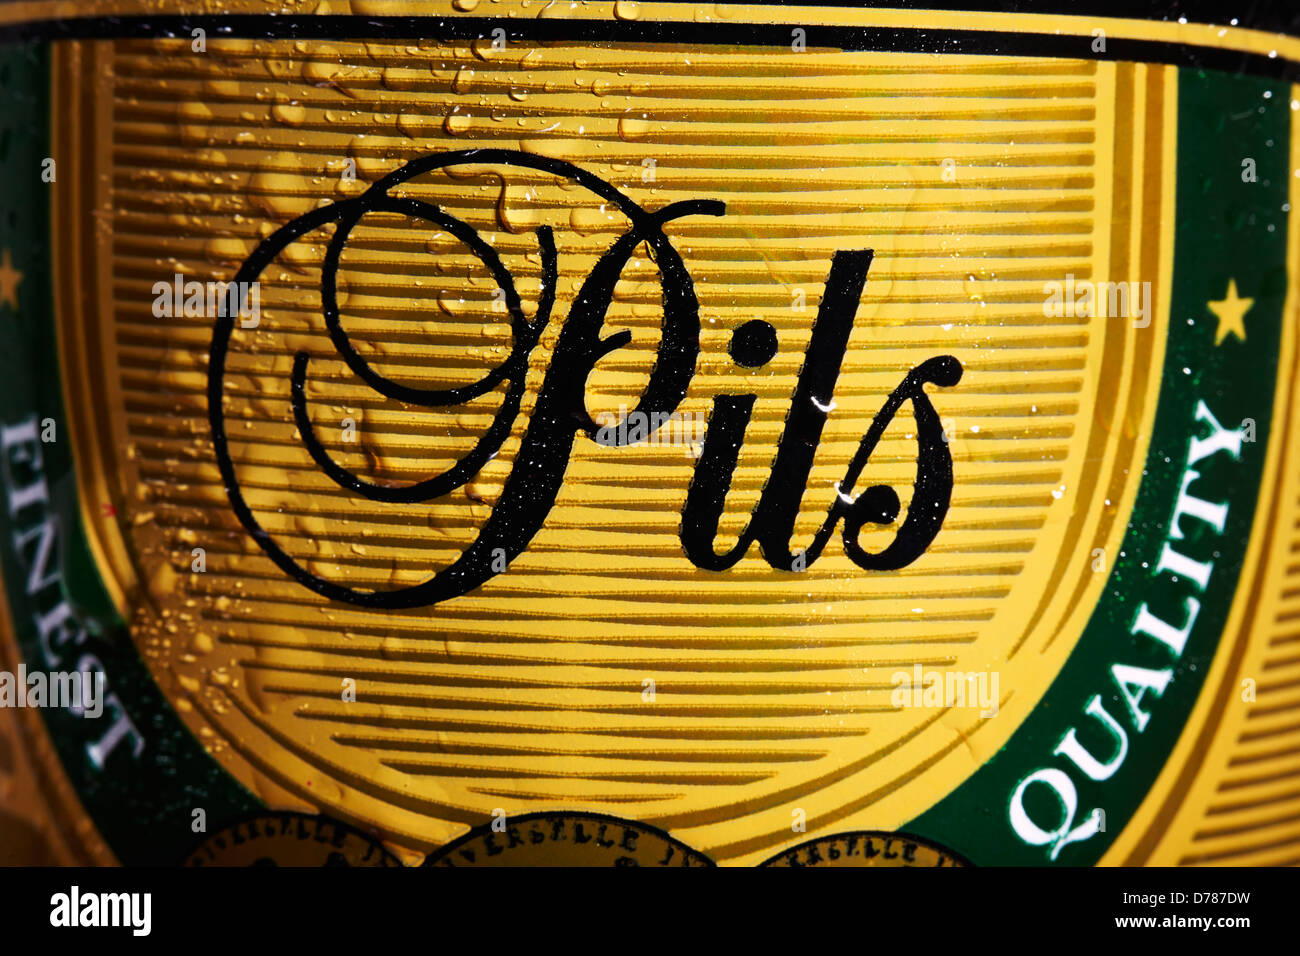 Close up of a Can of Pils Beer - Stock Image